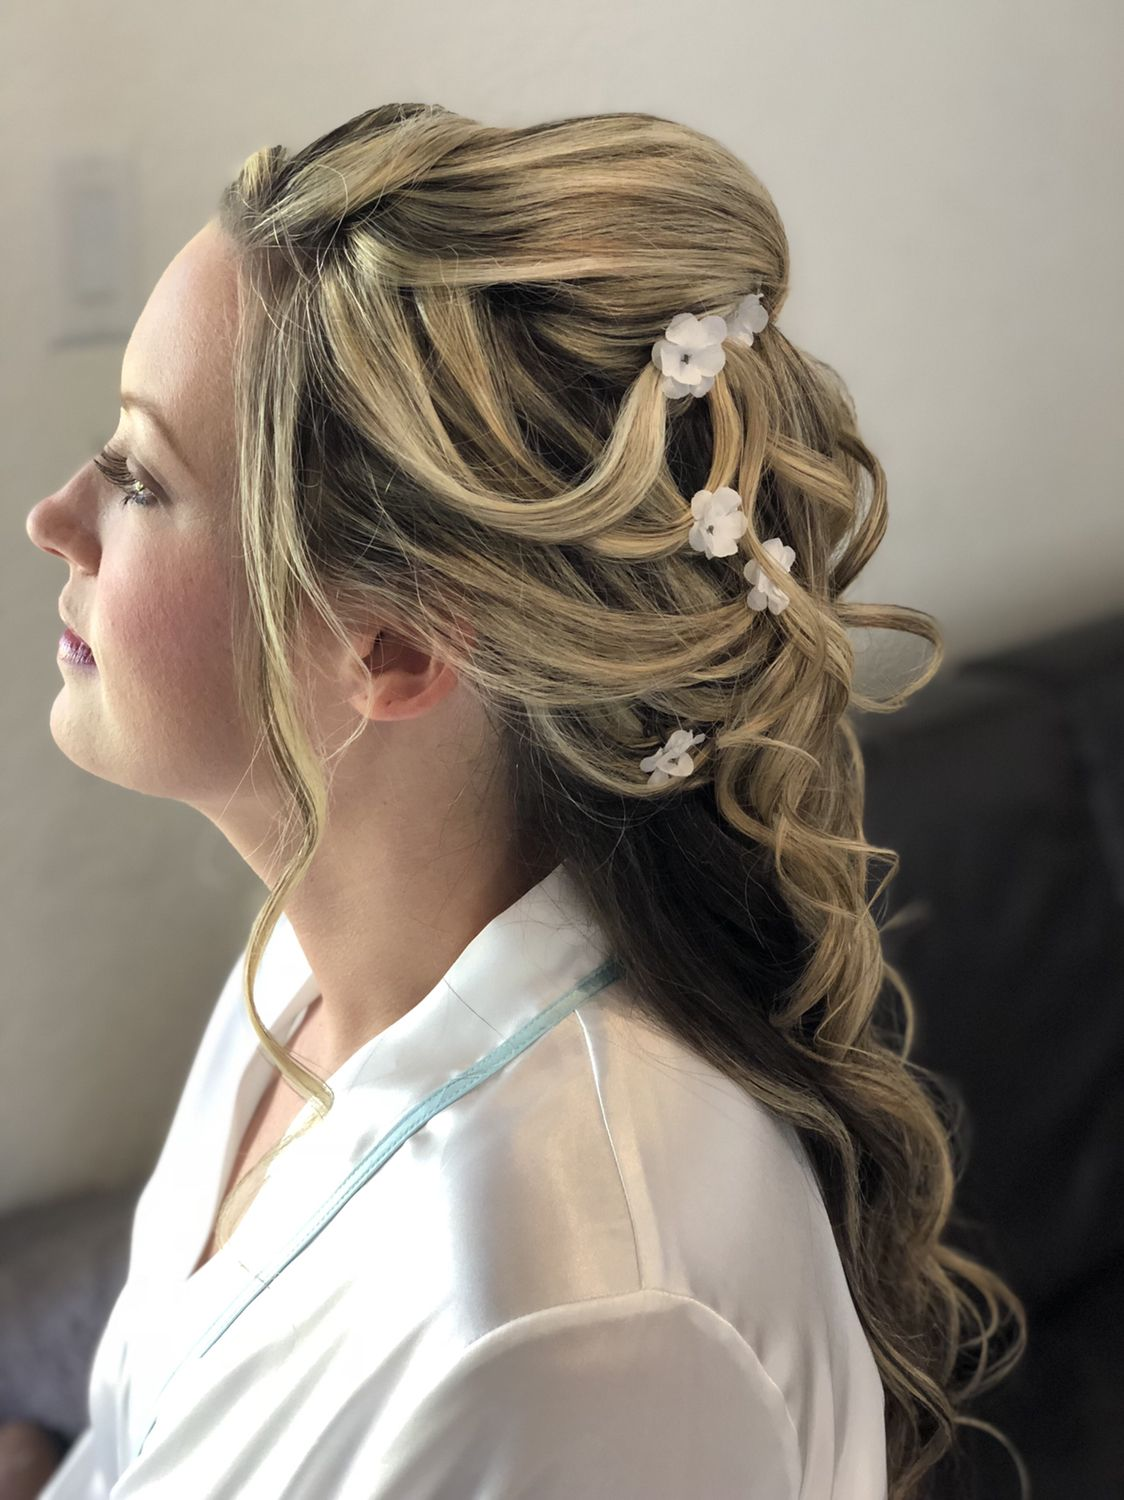 hair artistry by lara 888-519-1118 team bride orlando fl